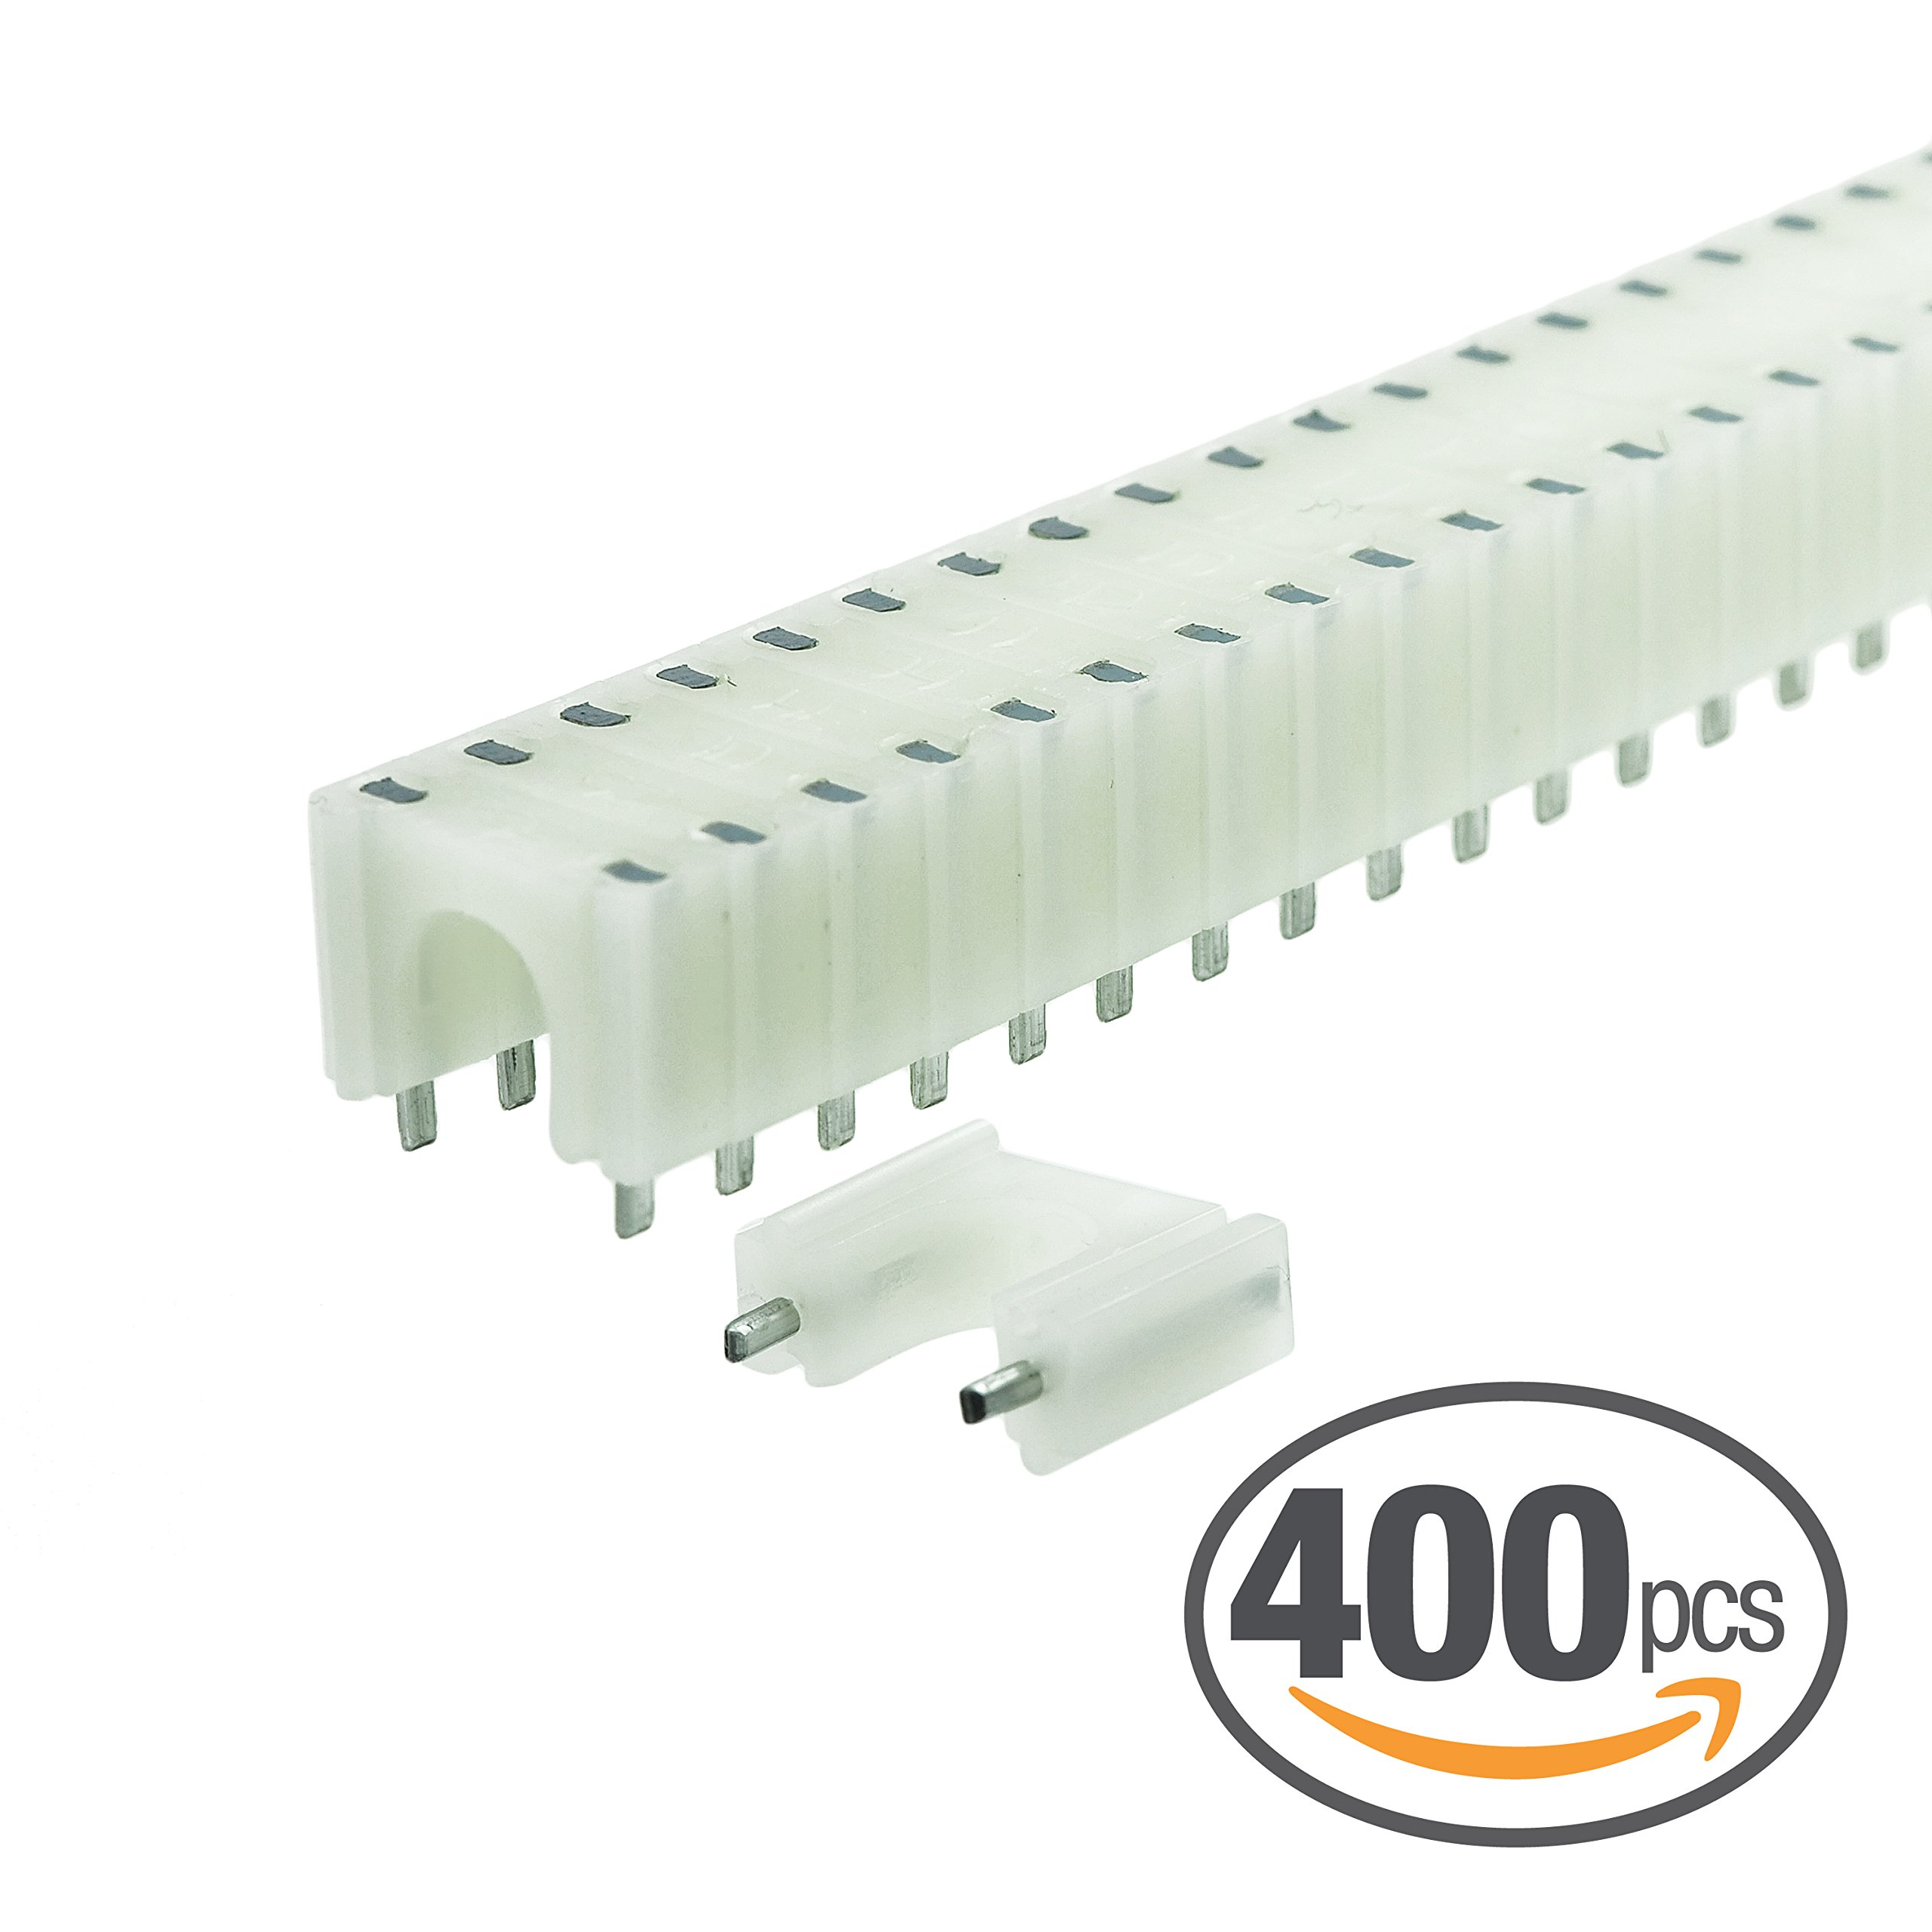 Mediabridge 8mm Cable Clips (400pcs, White) 16×25pc cartridges - For RG6 Tri/Quad Shield Coax, Cat7, 14-16AWG 4-Conductor & 12AWG 2-Conductor Speaker Wire (0.275''-0.3'' Outer Diameter) (Part# RBC8W )